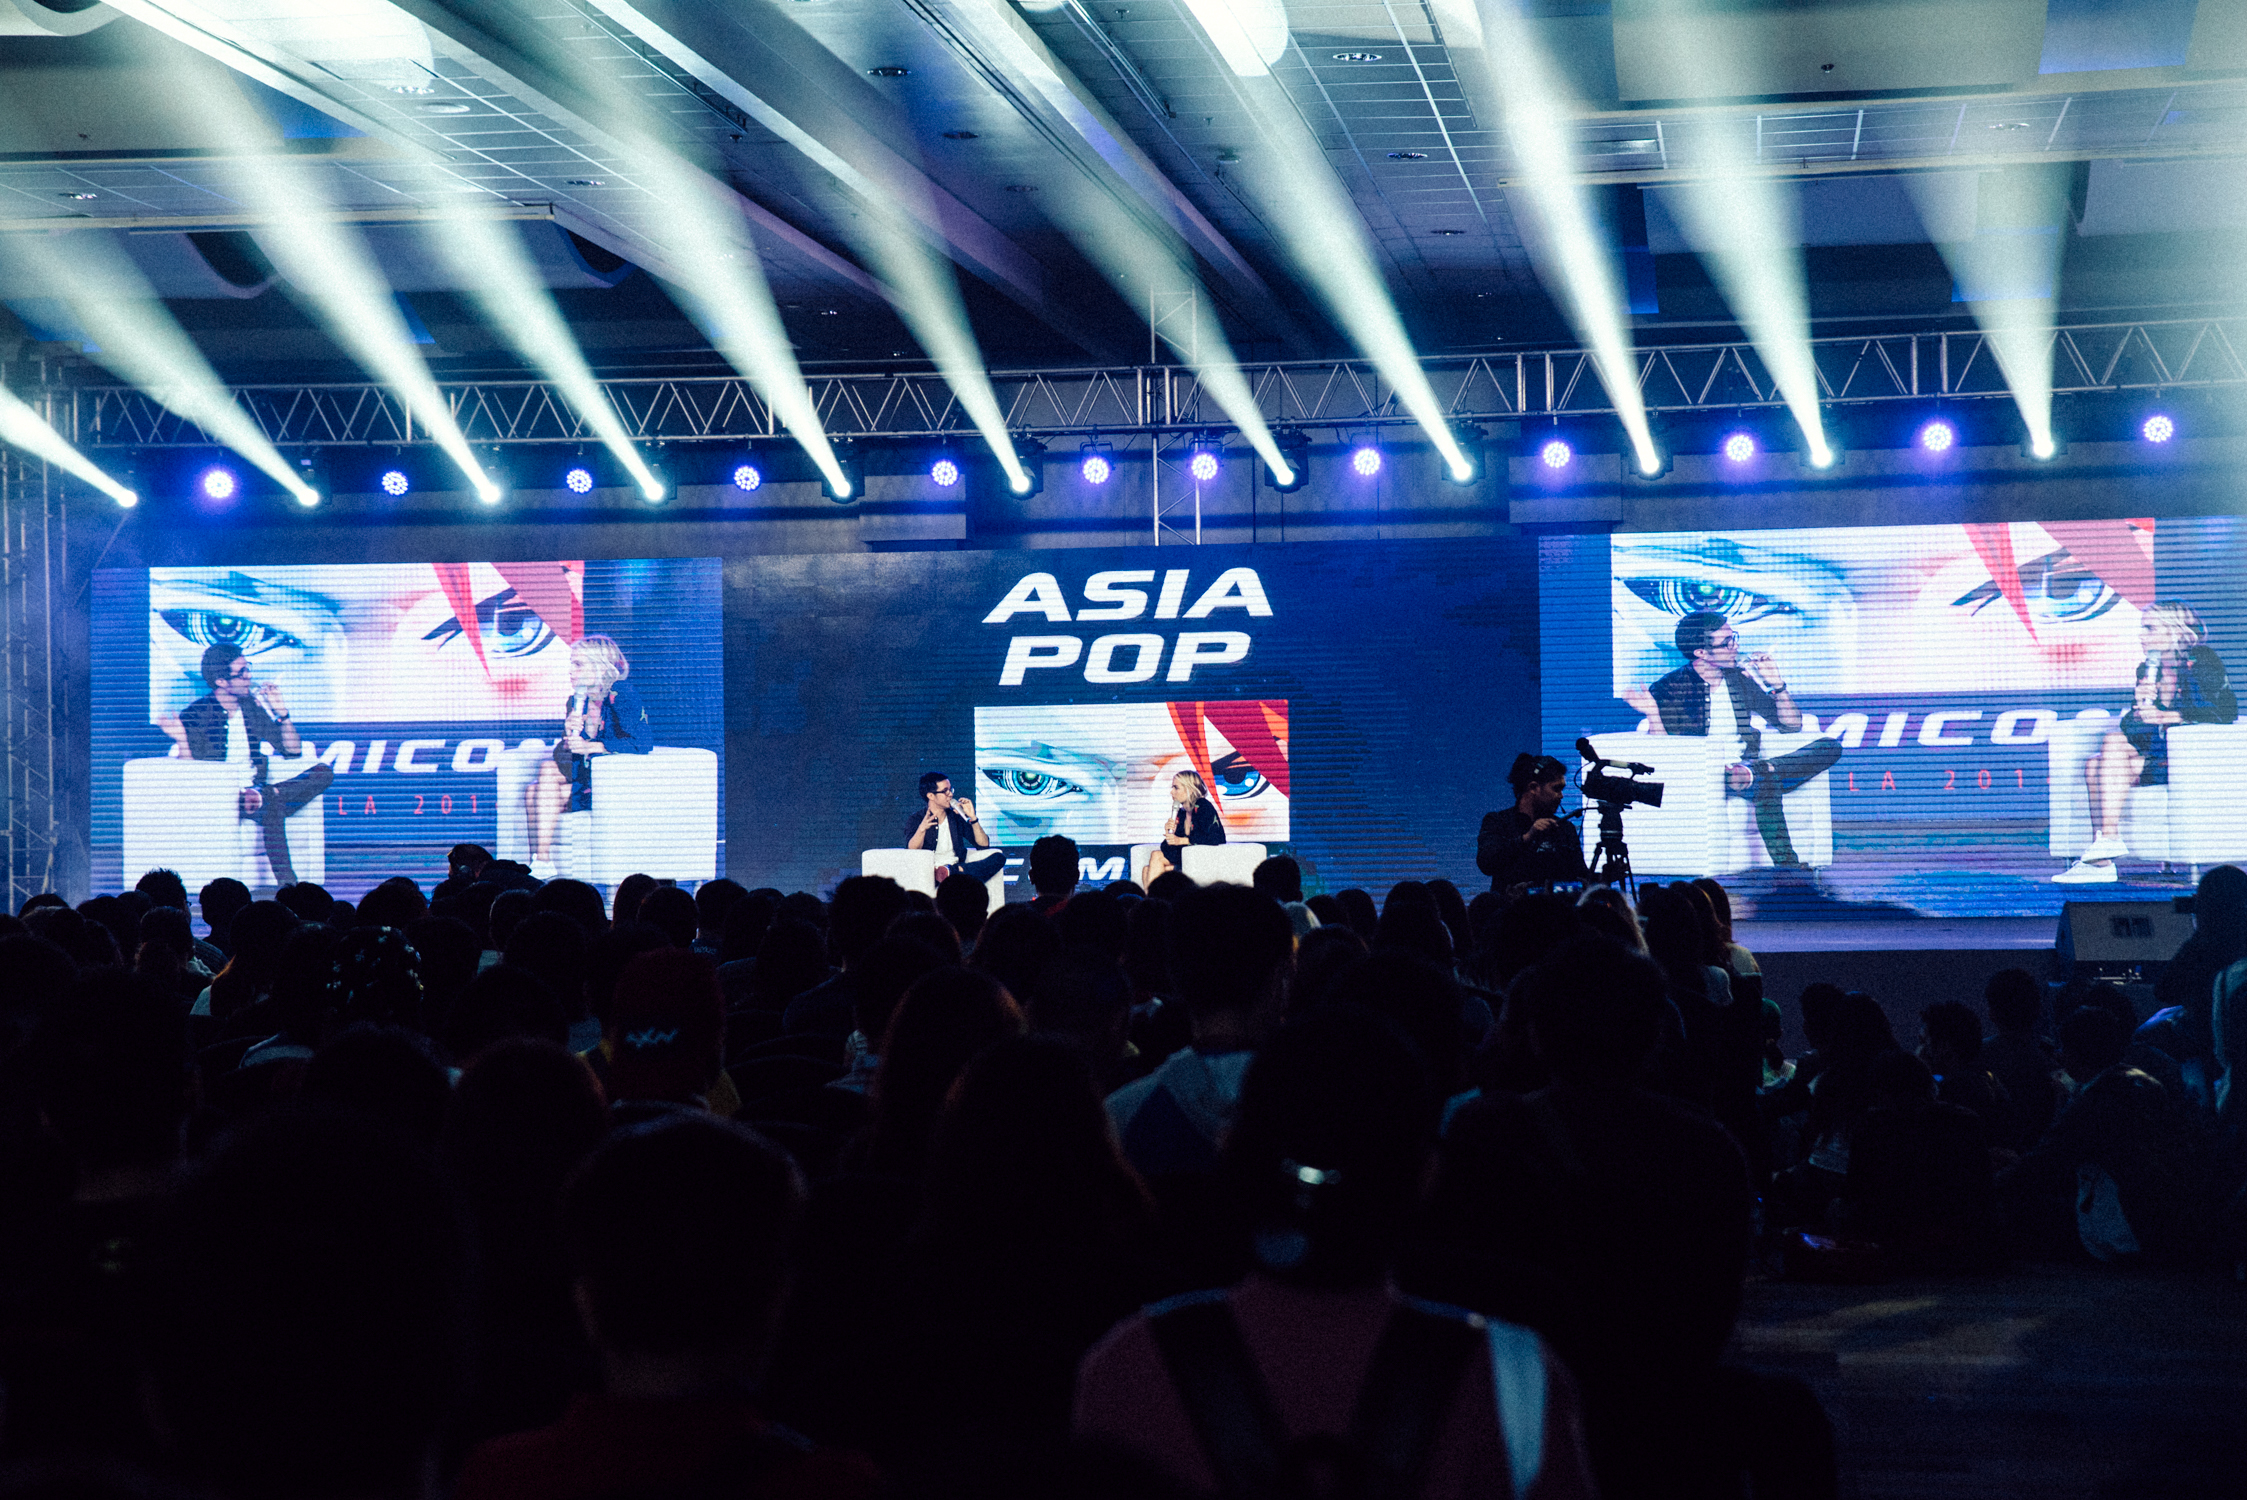 What We Learned At This Year's Asia Pop Comic Con